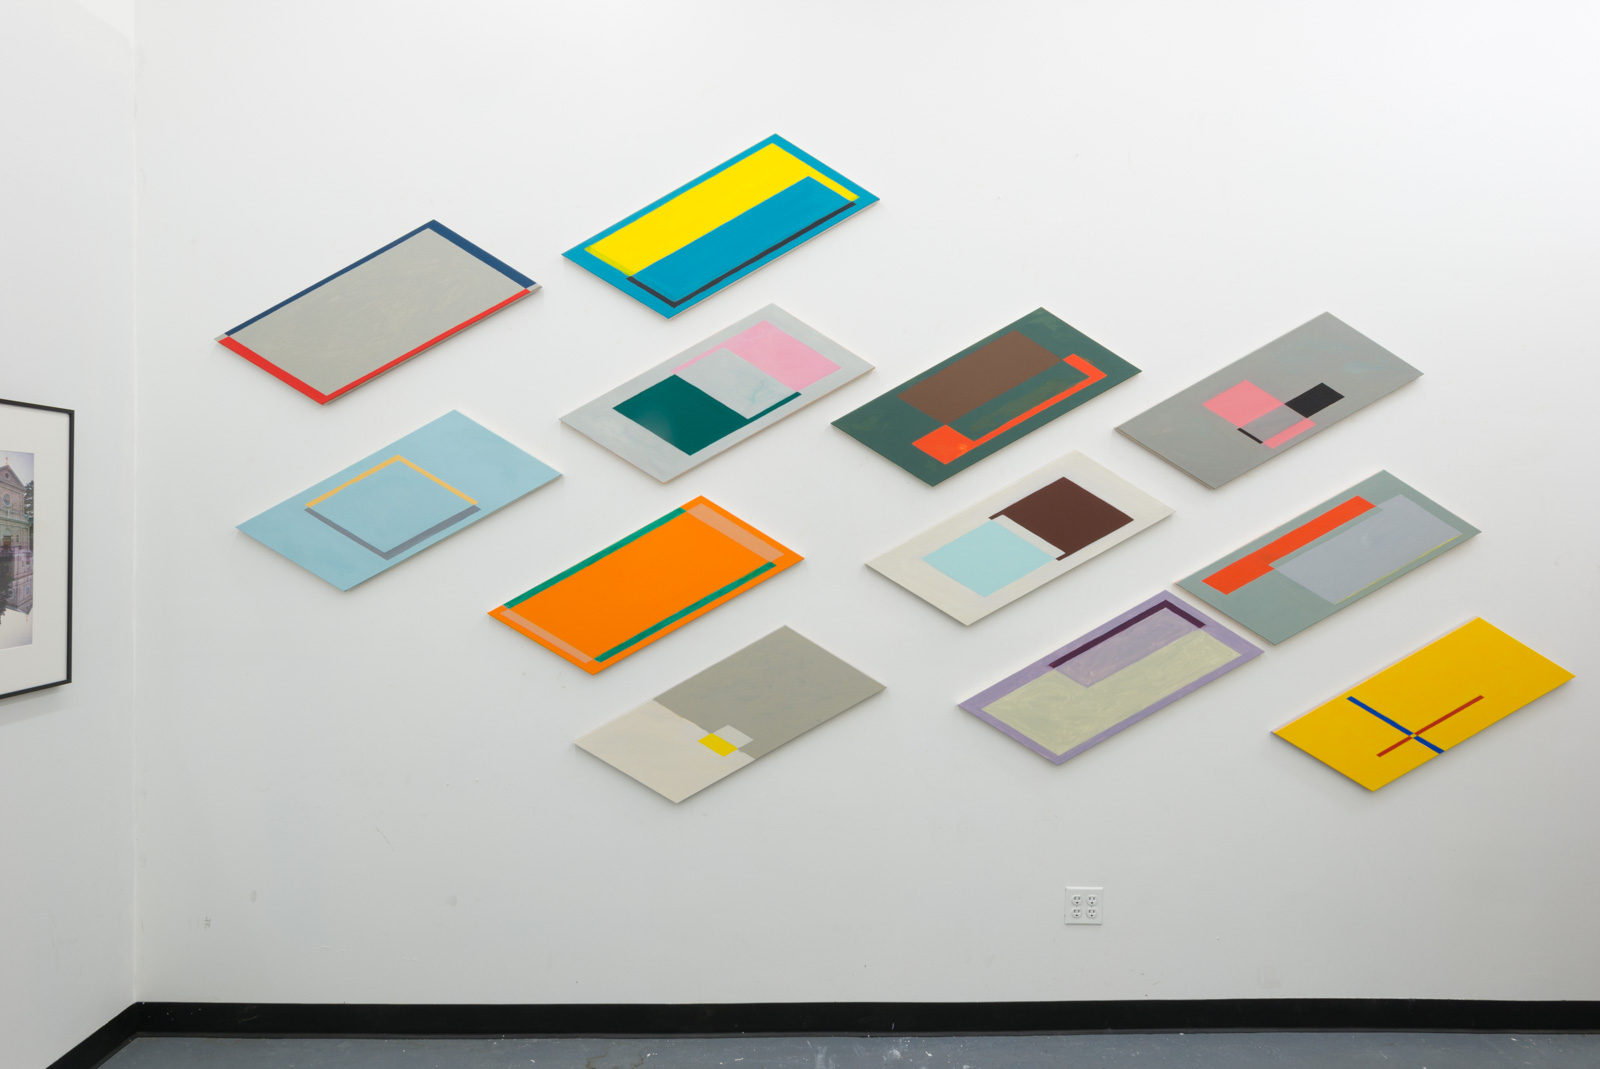 Installation view of Diagram series